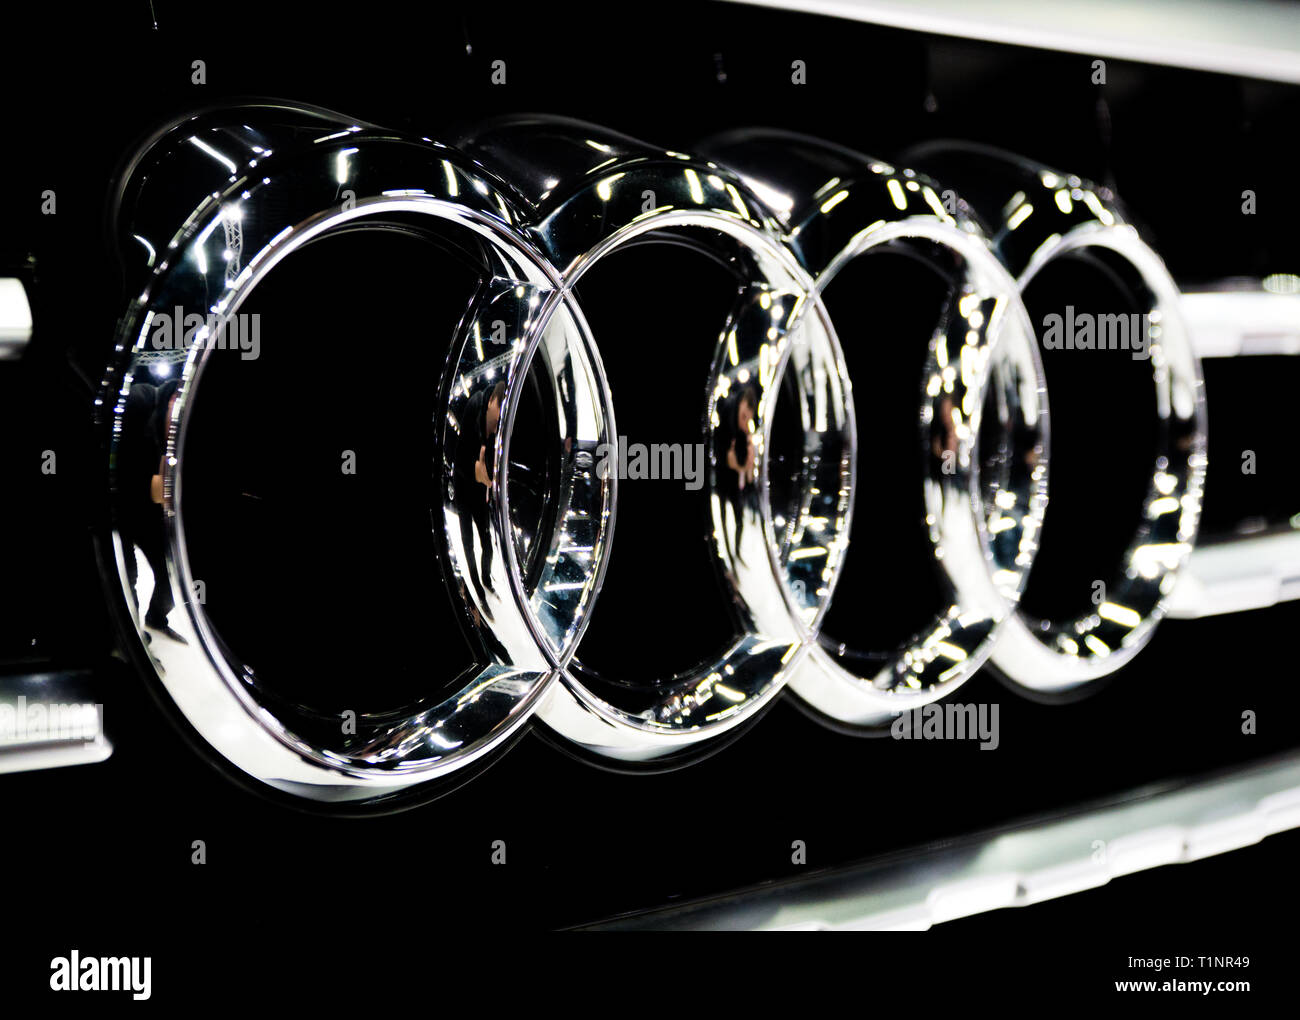 Audi Logo High Resolution Stock Photography And Images Alamy